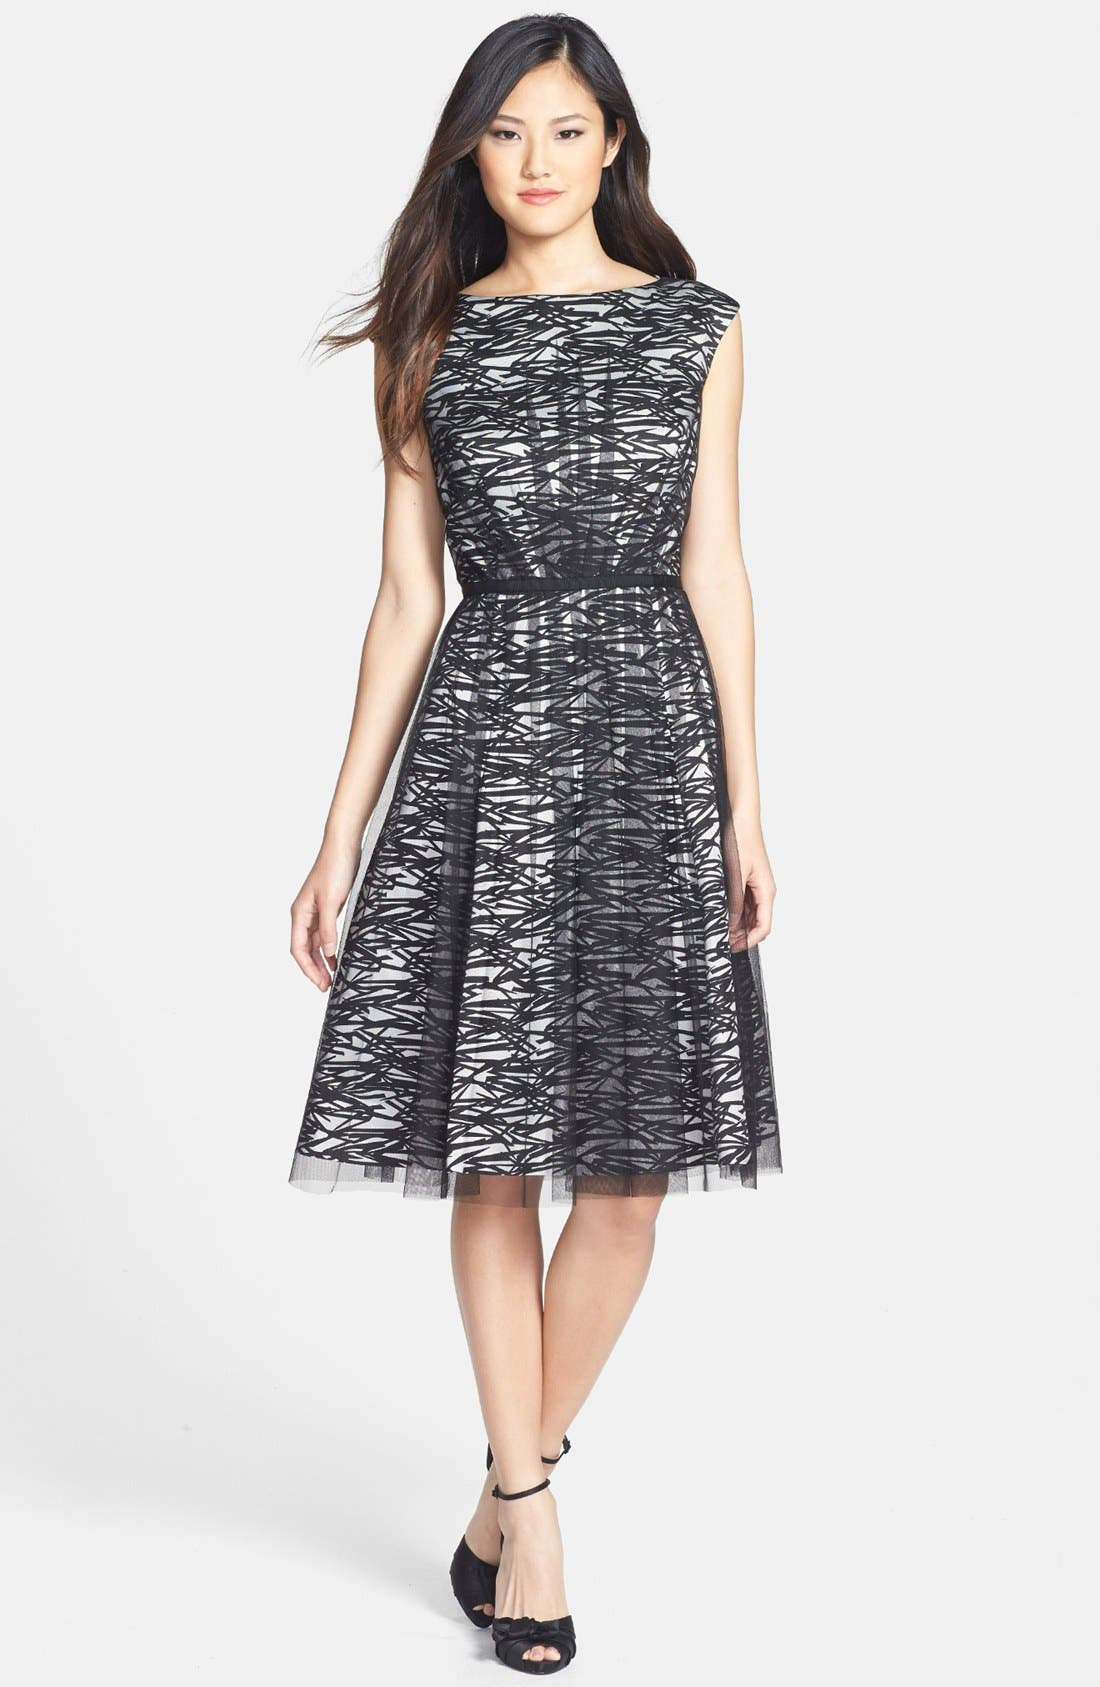 Alternate Image 1 Selected - Maggy London Mesh Overlay Print Taffeta Fit & Flare Dress (Regular & Petite)